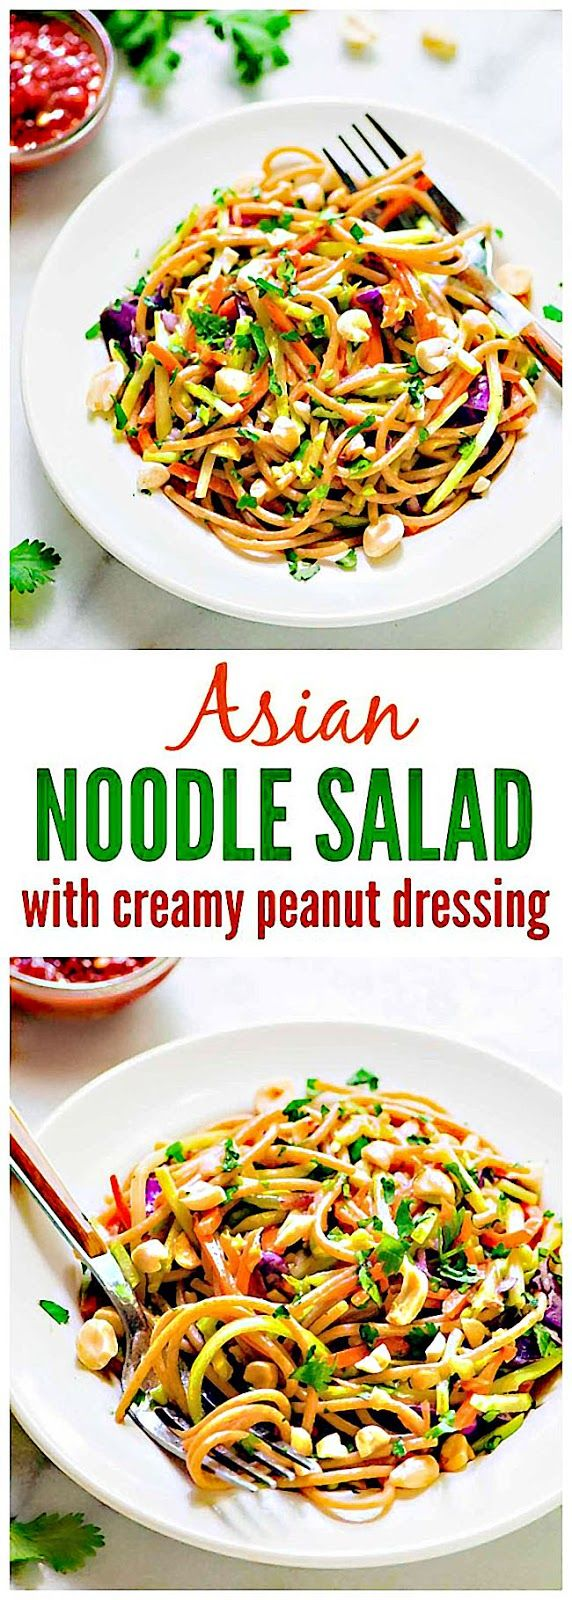 Your recipes is a blog for family cooking with hundreds recipes of your recipes is a blog for family cooking with hundreds recipes of healthy whole food recipes for the home cook easy to do step by step vegan pinterest forumfinder Choice Image